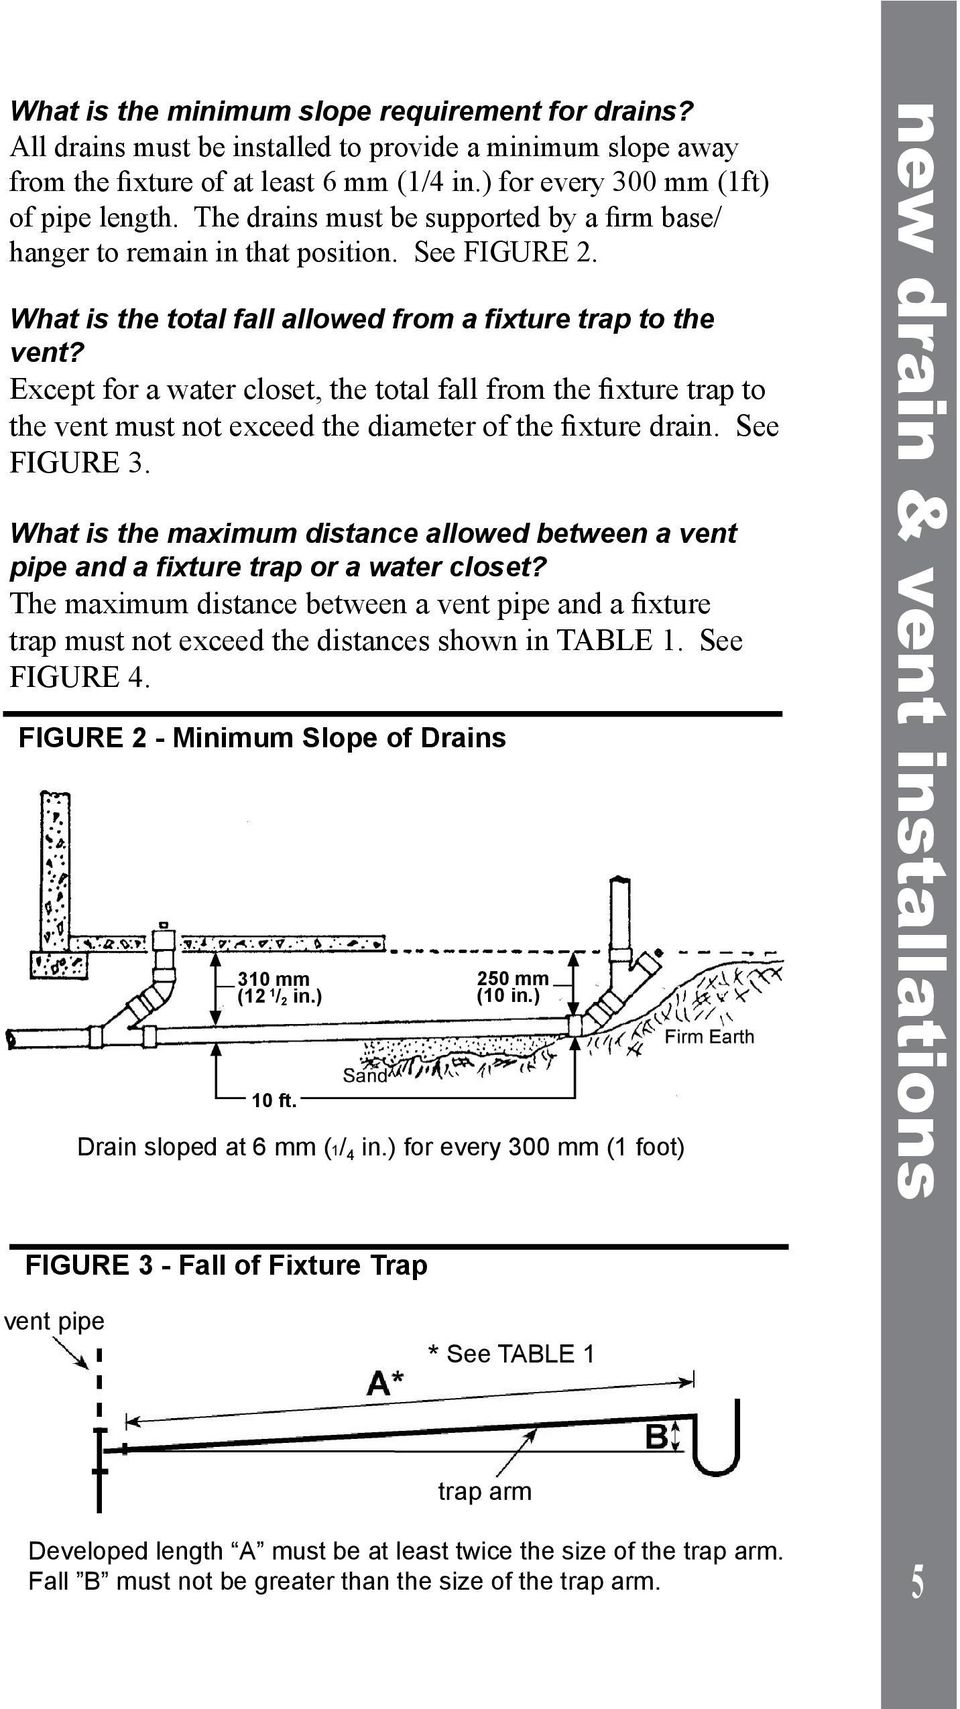 Except for a water closet, the total fall from the fixture trap to the vent must not exceed the diameter of the fixture drain. See FIGURE 3.